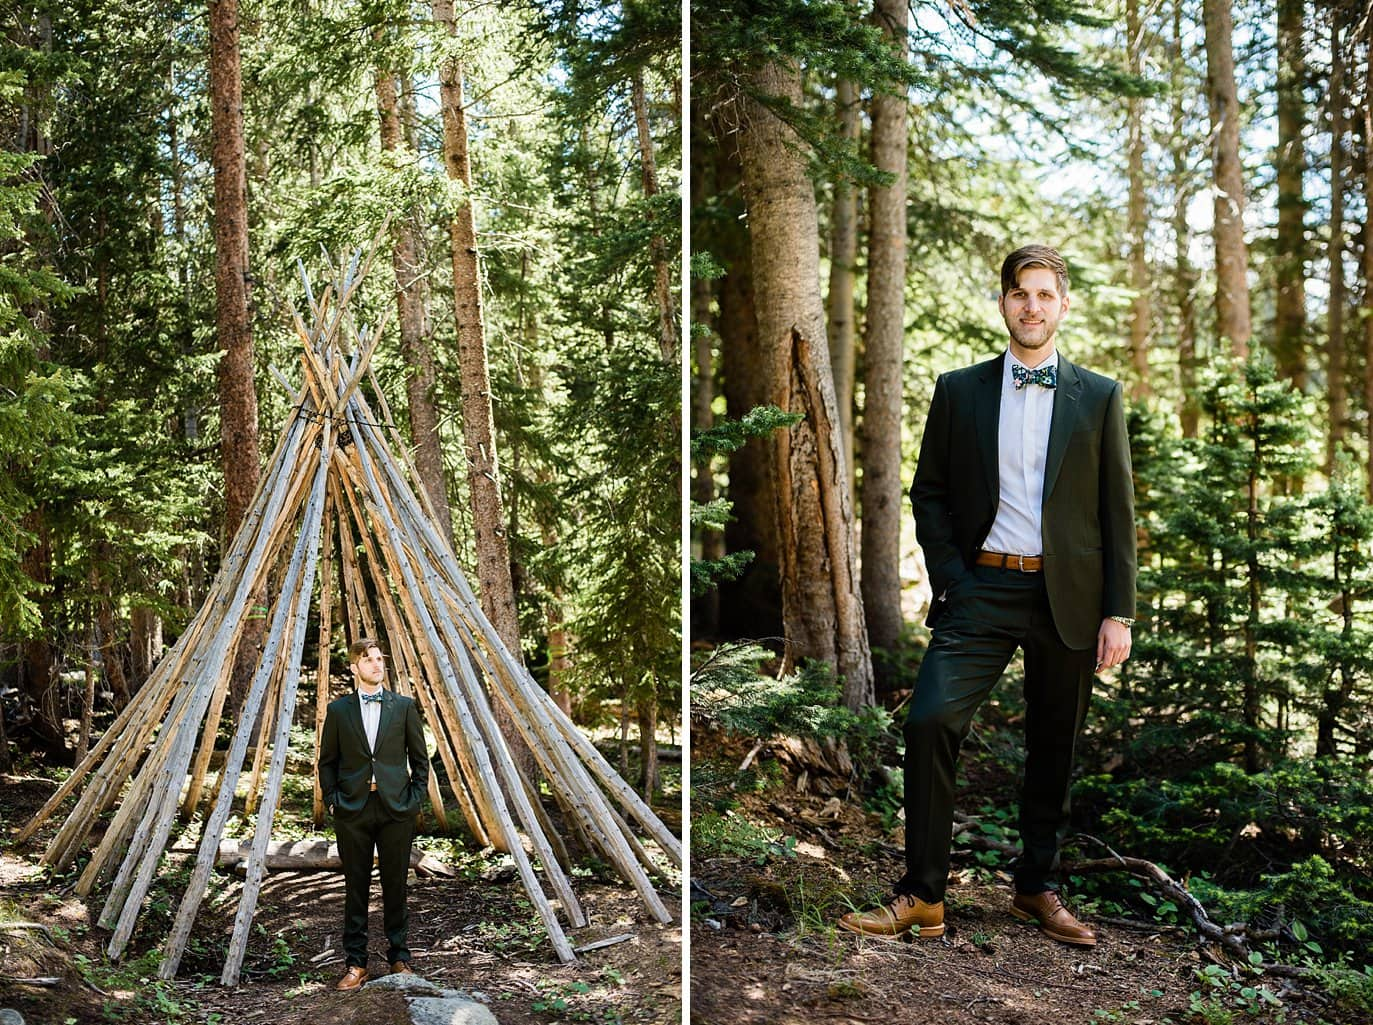 groom in olive suit in evergreen trees before first look at Arapahoe Basin wedding by Breckenridge wedding photographer Jennie Crate